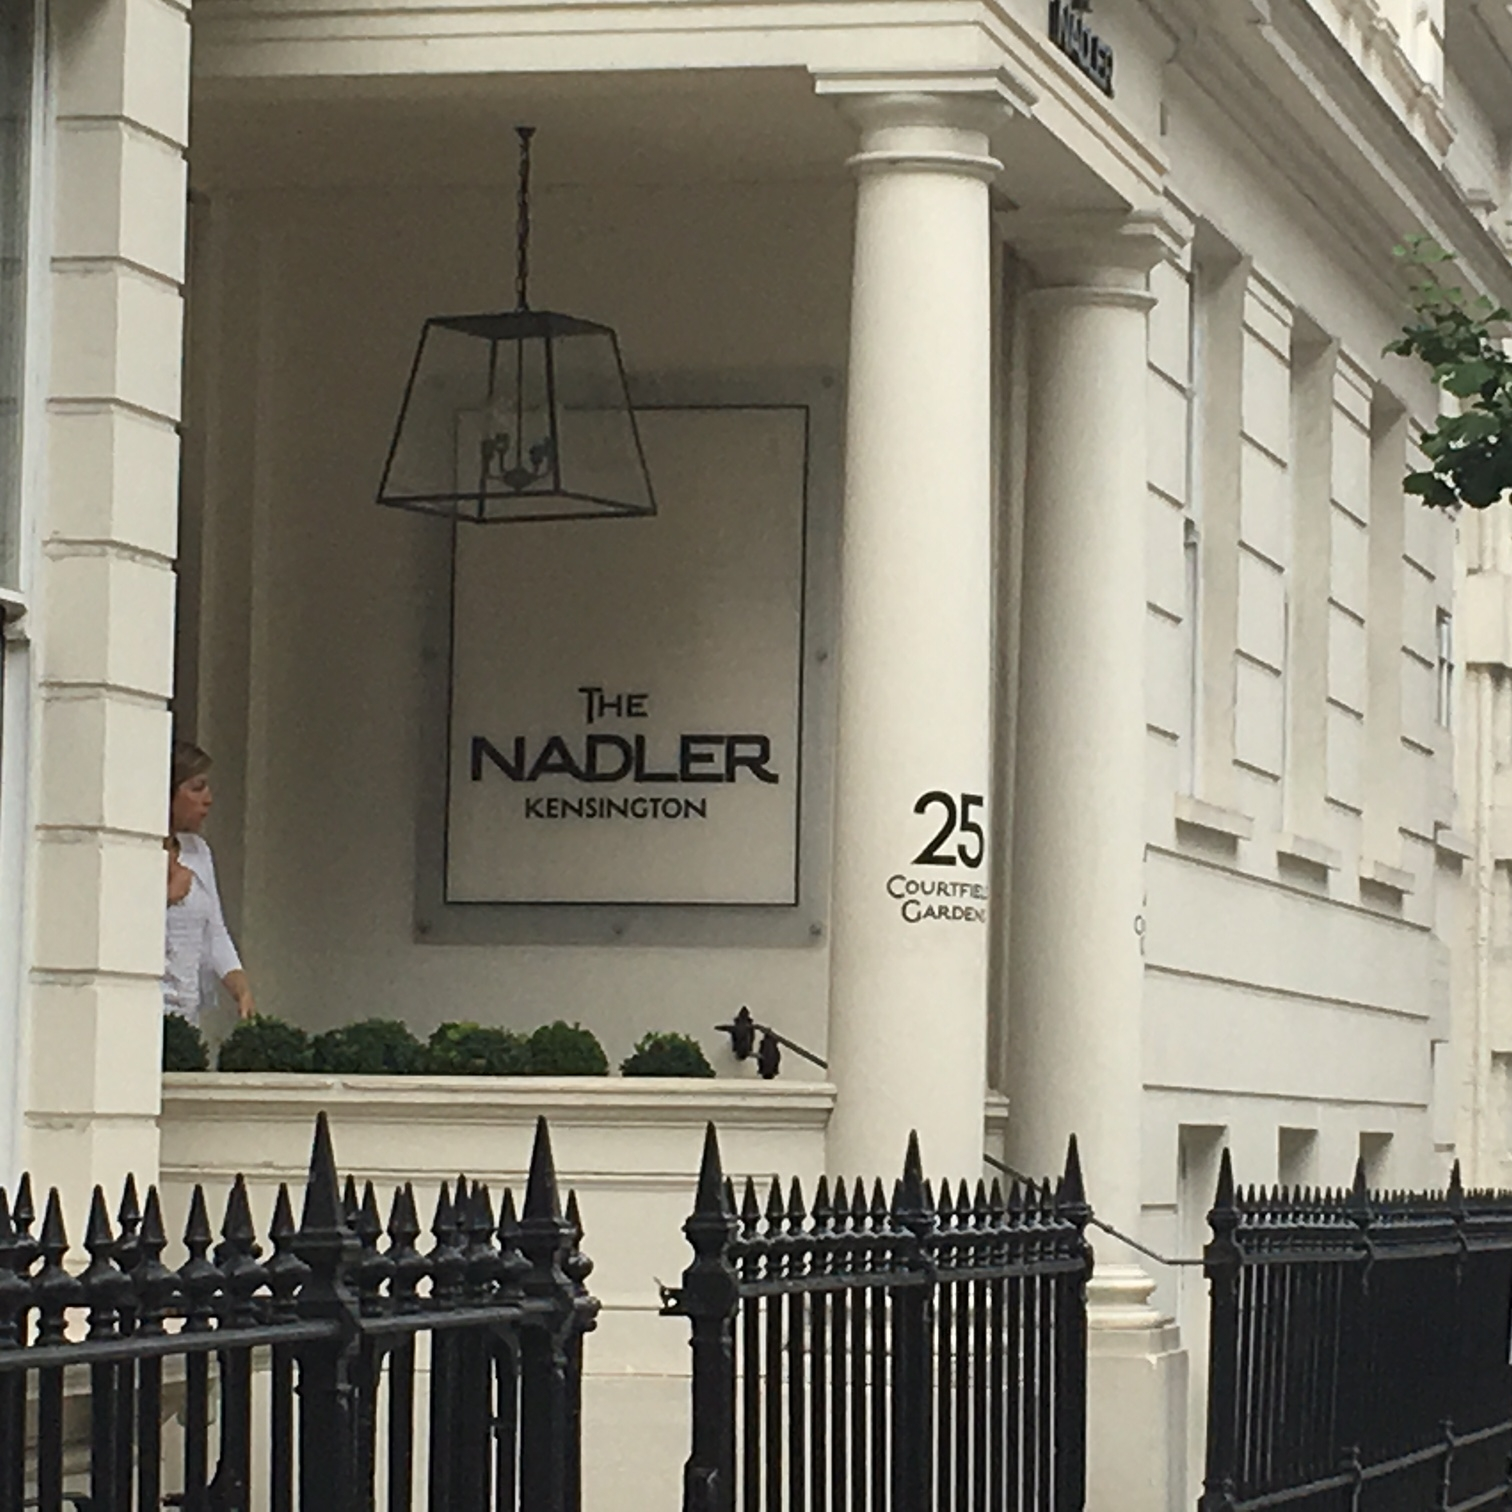 The Nadler, London by The Doubtful Traveller